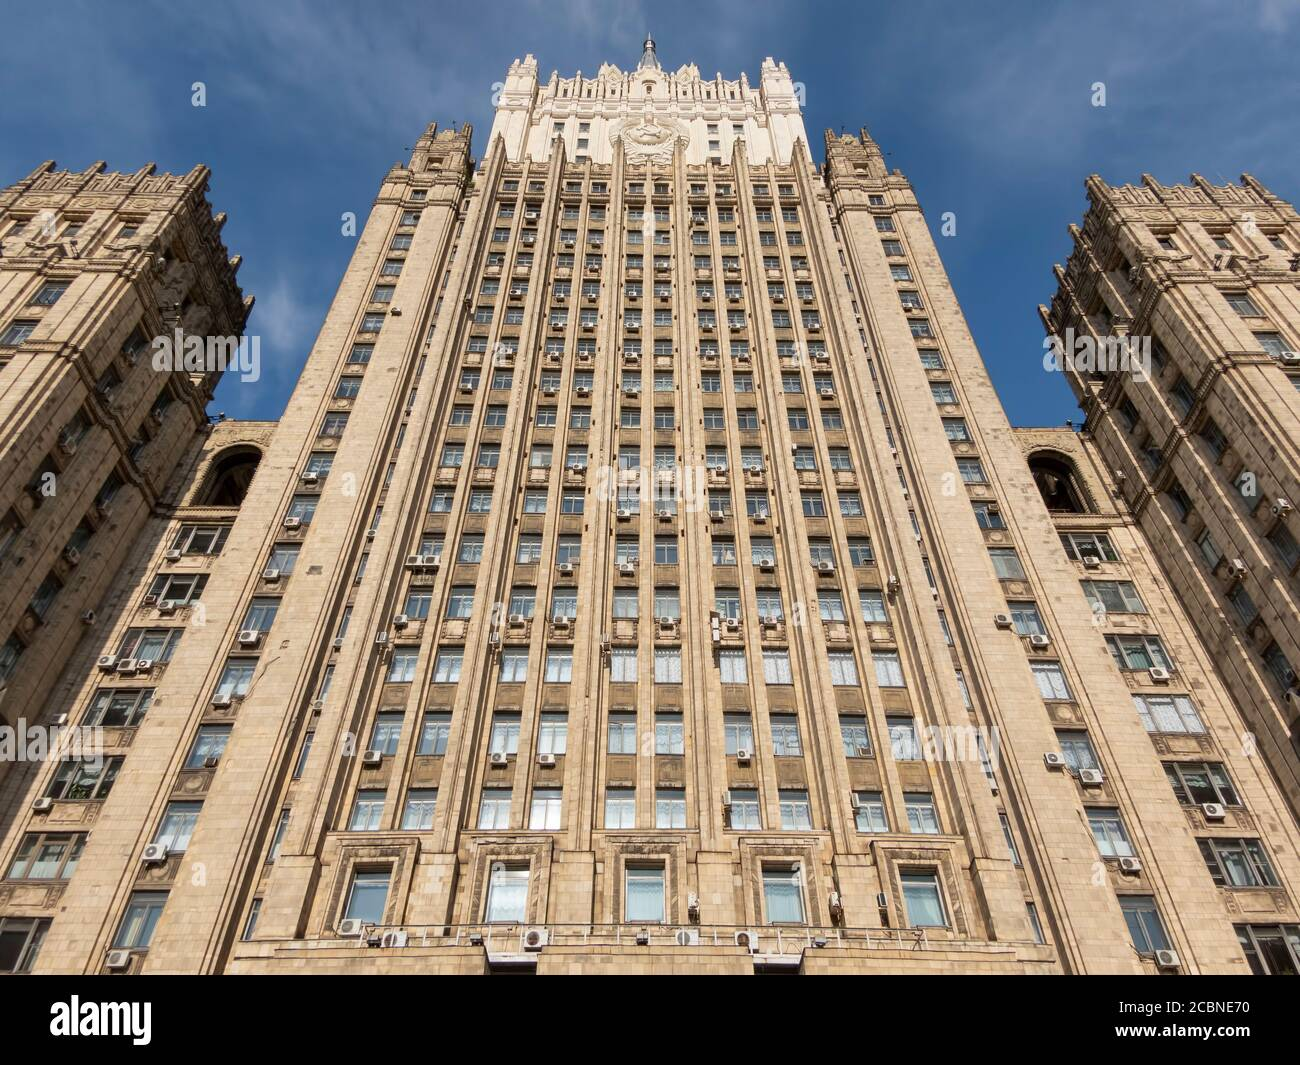 MOSCOW - SEPTEMBER 27: building of the Ministry of Foreign Affairs on September 27, 2010 in Moscow, Russia. Stock Photo